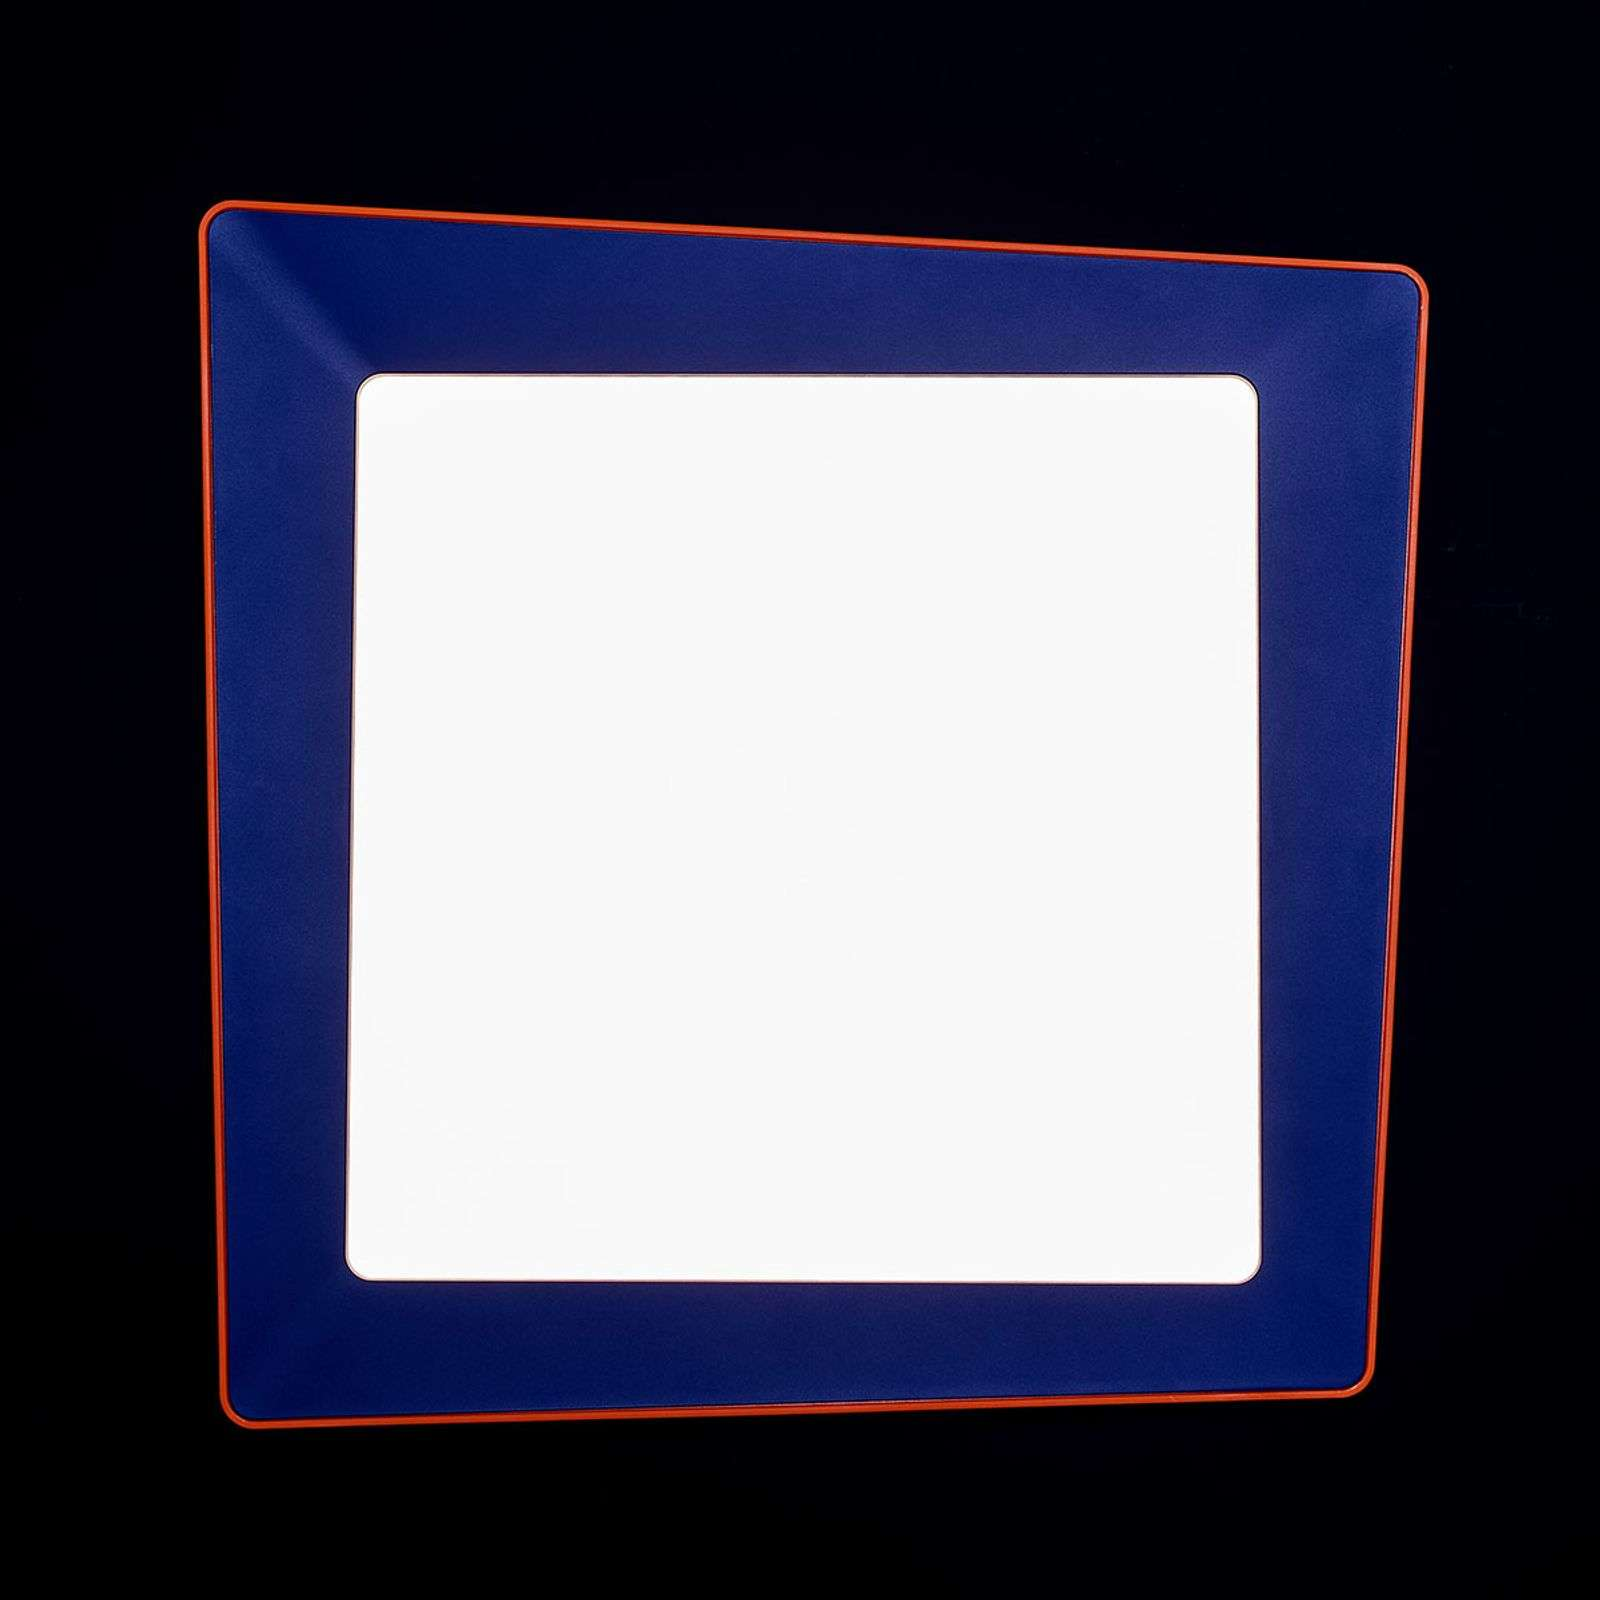 Applique LED de designer Crazy en bleu-orange